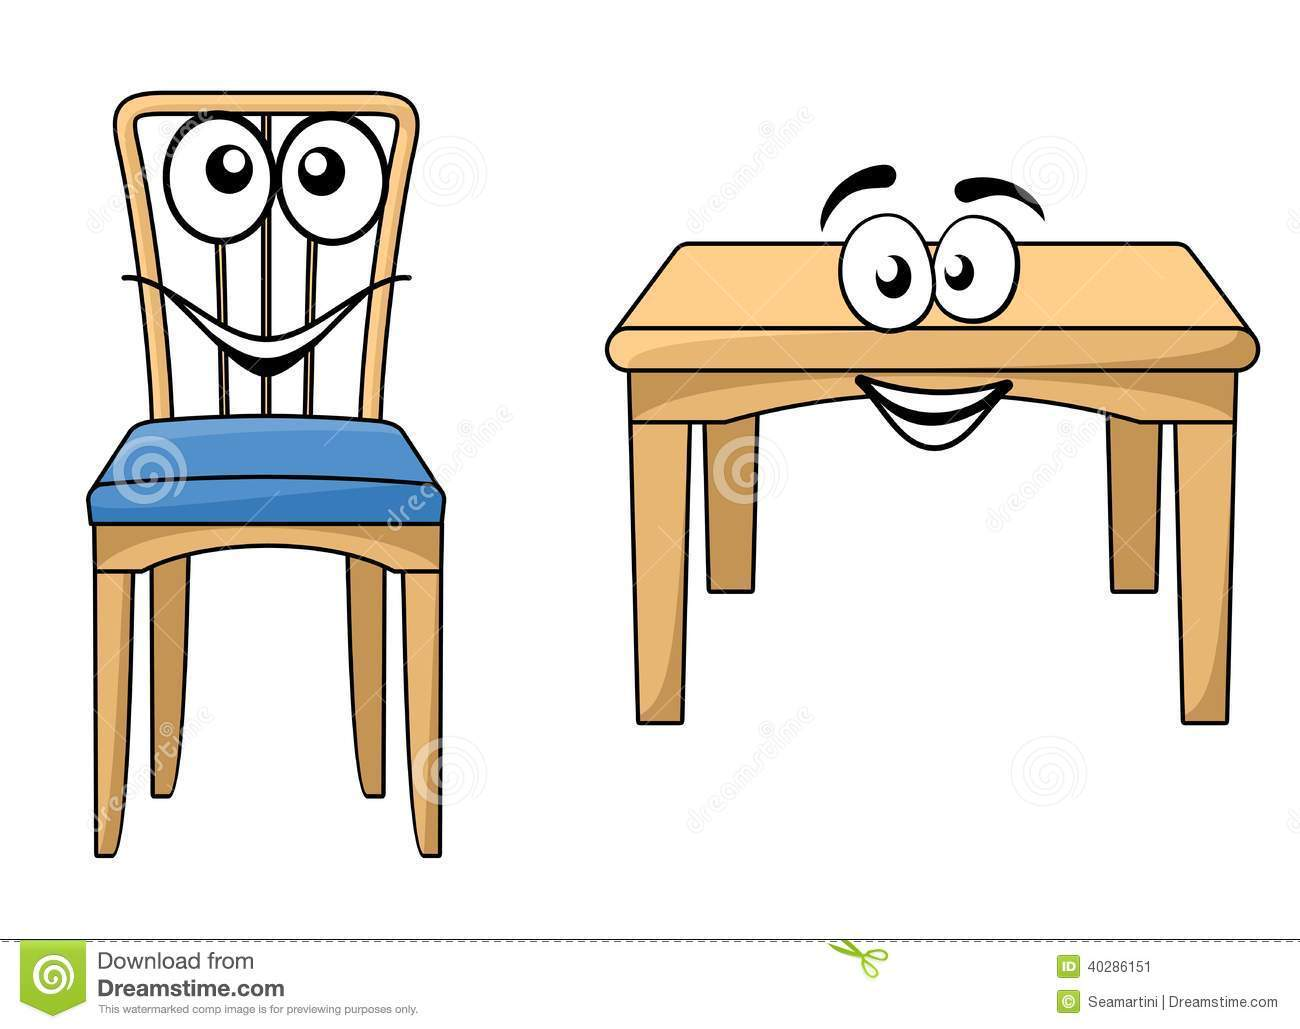 Chair at table clipart image royalty free stock Chair table clipart 4 » Clipart Portal image royalty free stock